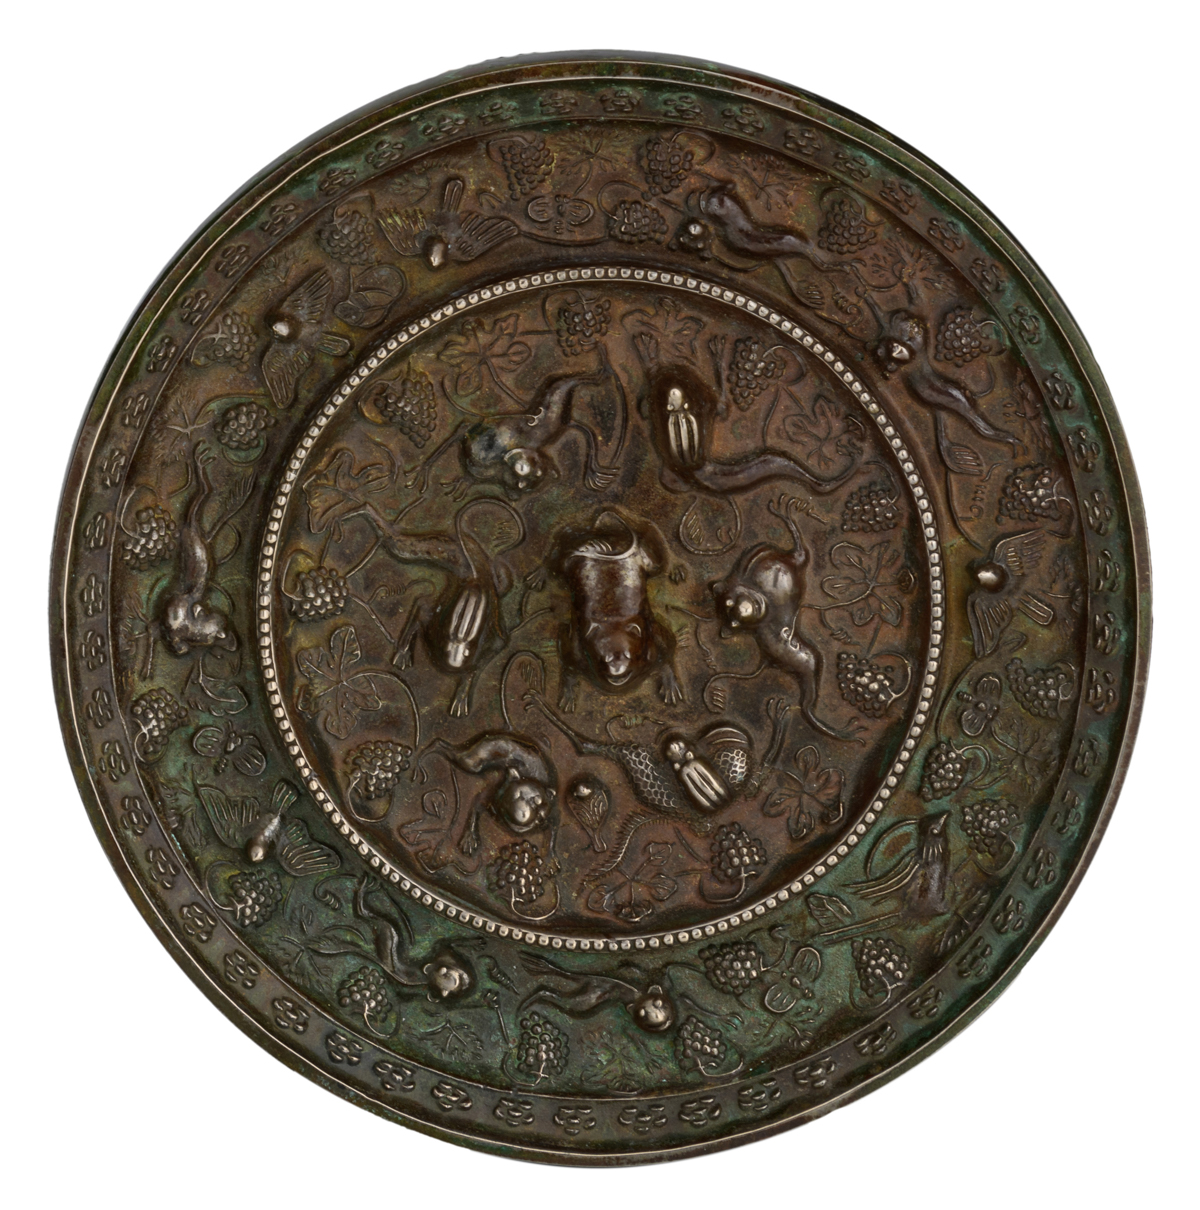 Lot 12 - A Chinese silver plated bronze circular mirror, decorated with animals amidst fruiting grapevine,